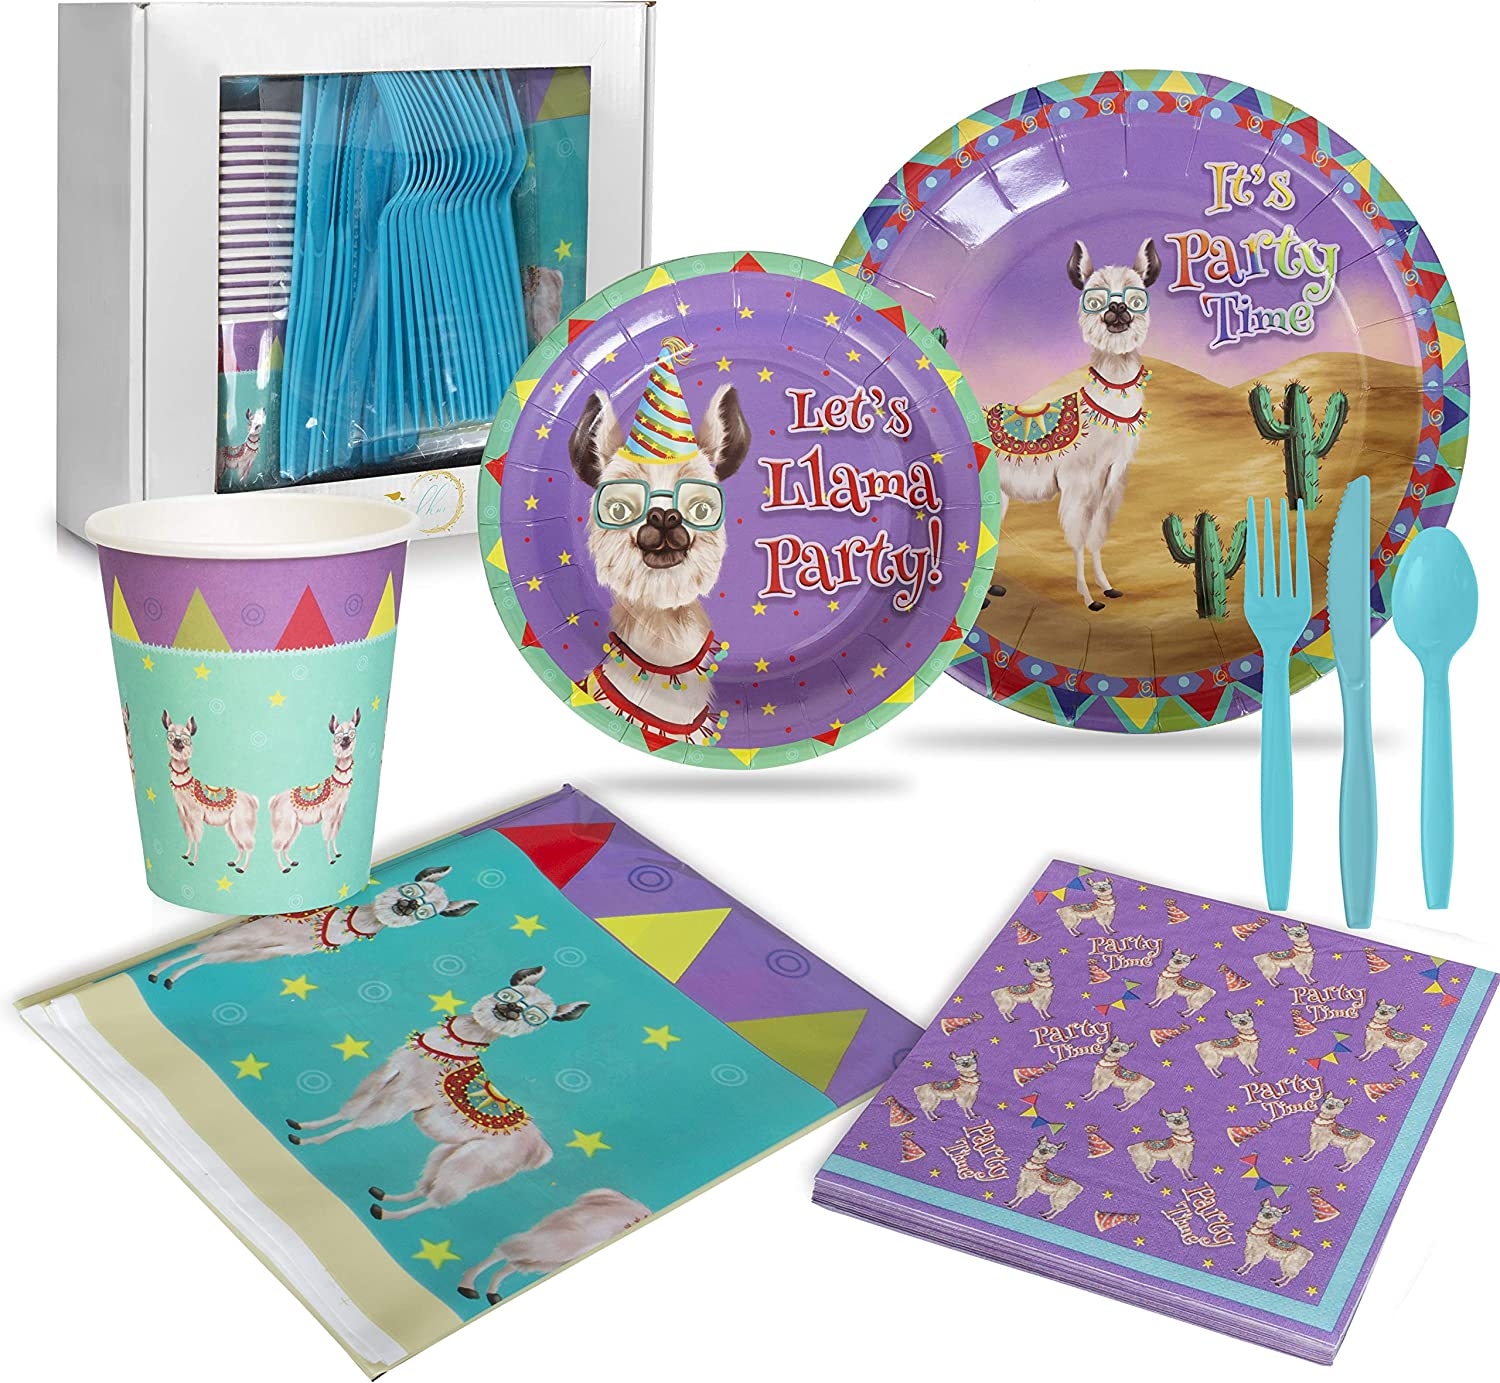 Llama Birthday Party Supplies for Boys, Girls and Adults (16 Guests)   Fun Fiesta Llama-Themed Birthday and Event Kit   Dinner and Dessert Plates, Cups, Napkins, Tablecloth and Cutlery